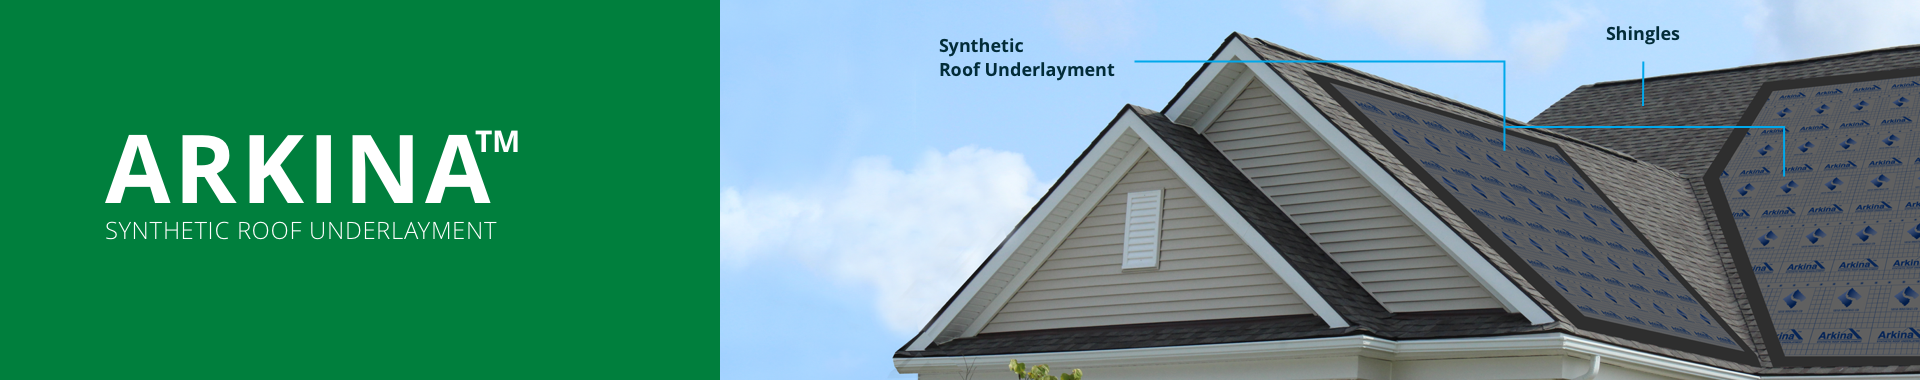 USA roof underlyament